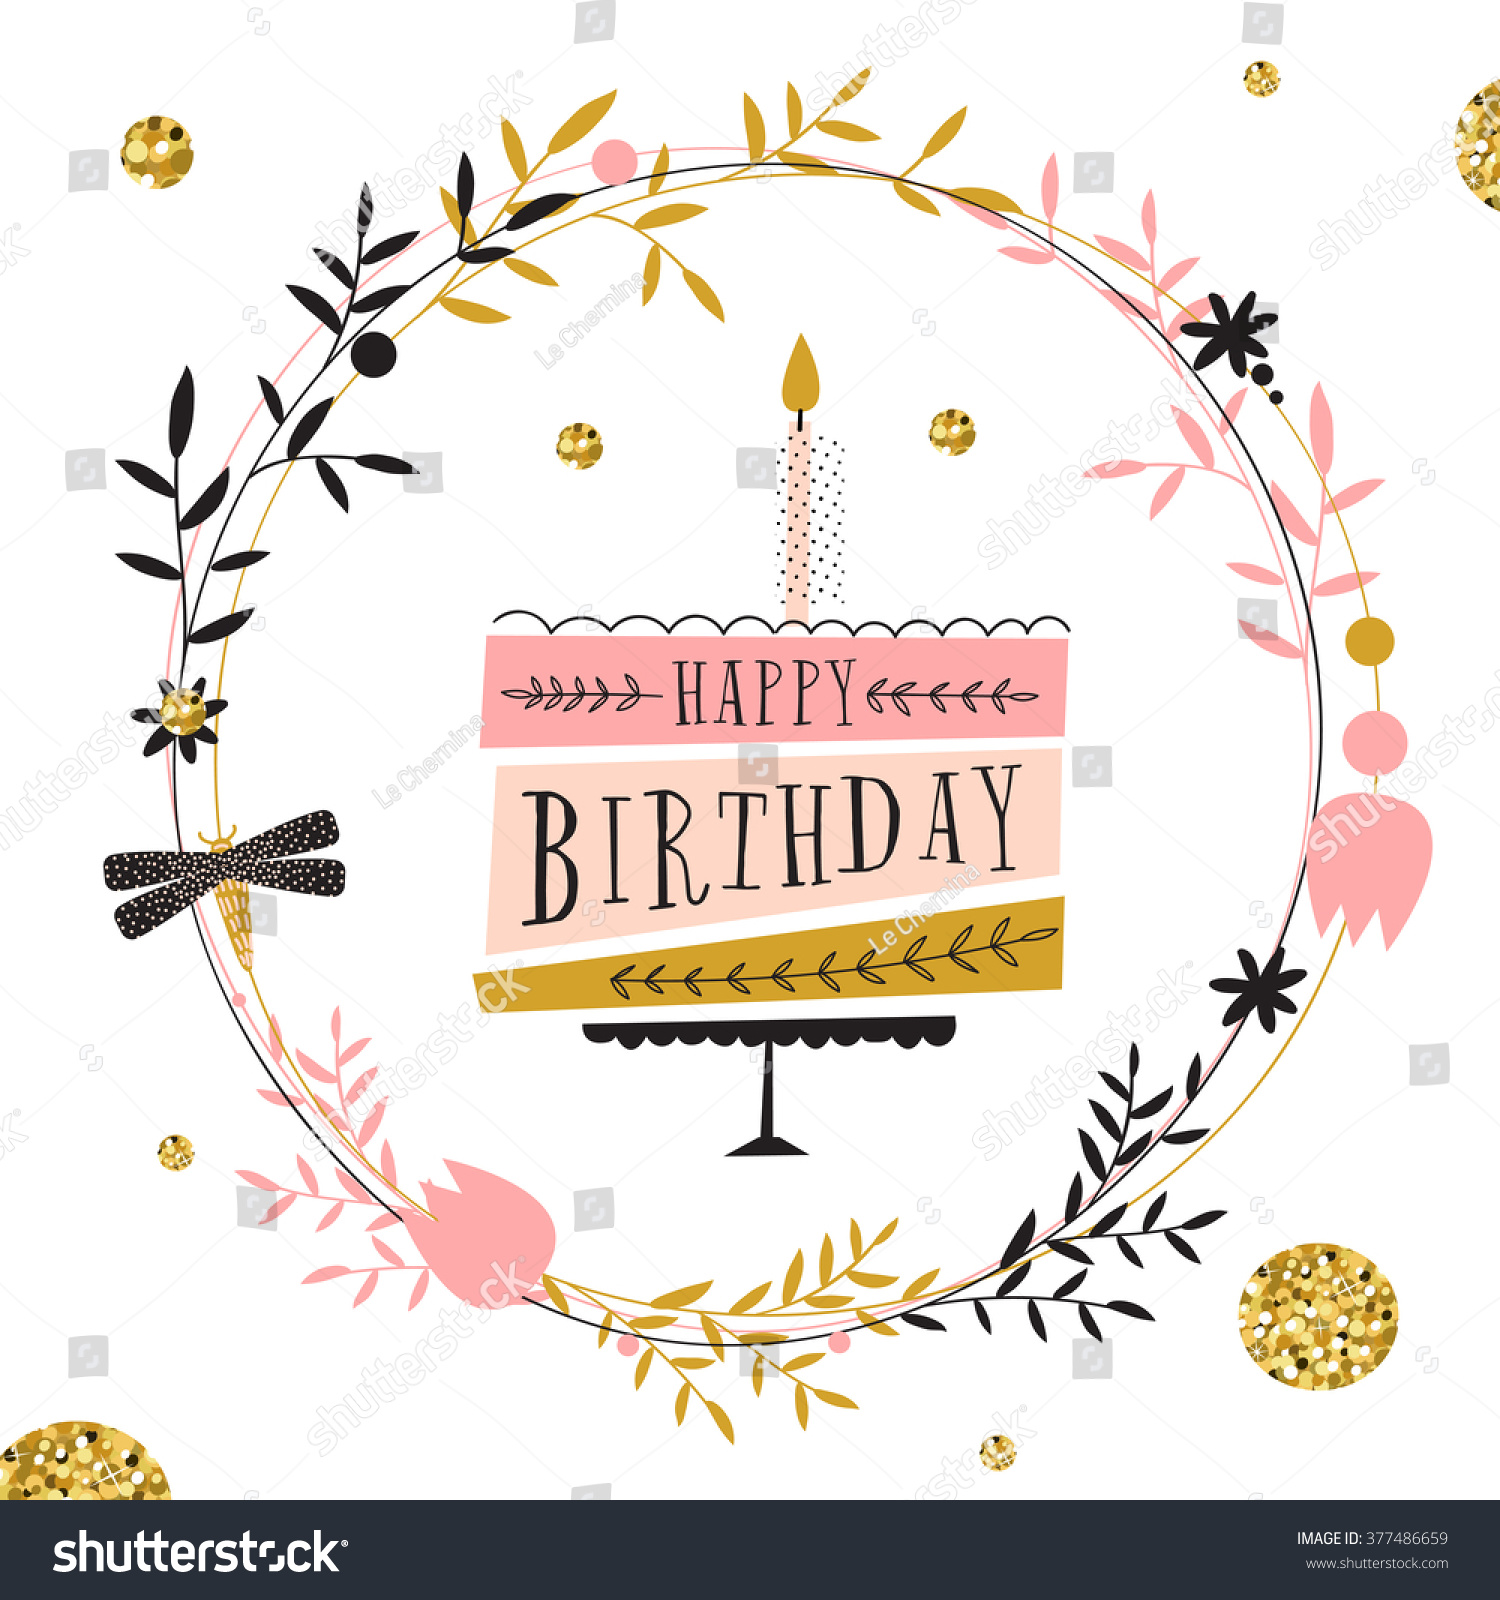 happy birthday modern ; stock-vector-vector-happy-birthday-card-modern-hipster-greeting-with-handwriting-type-and-minimalistic-377486659